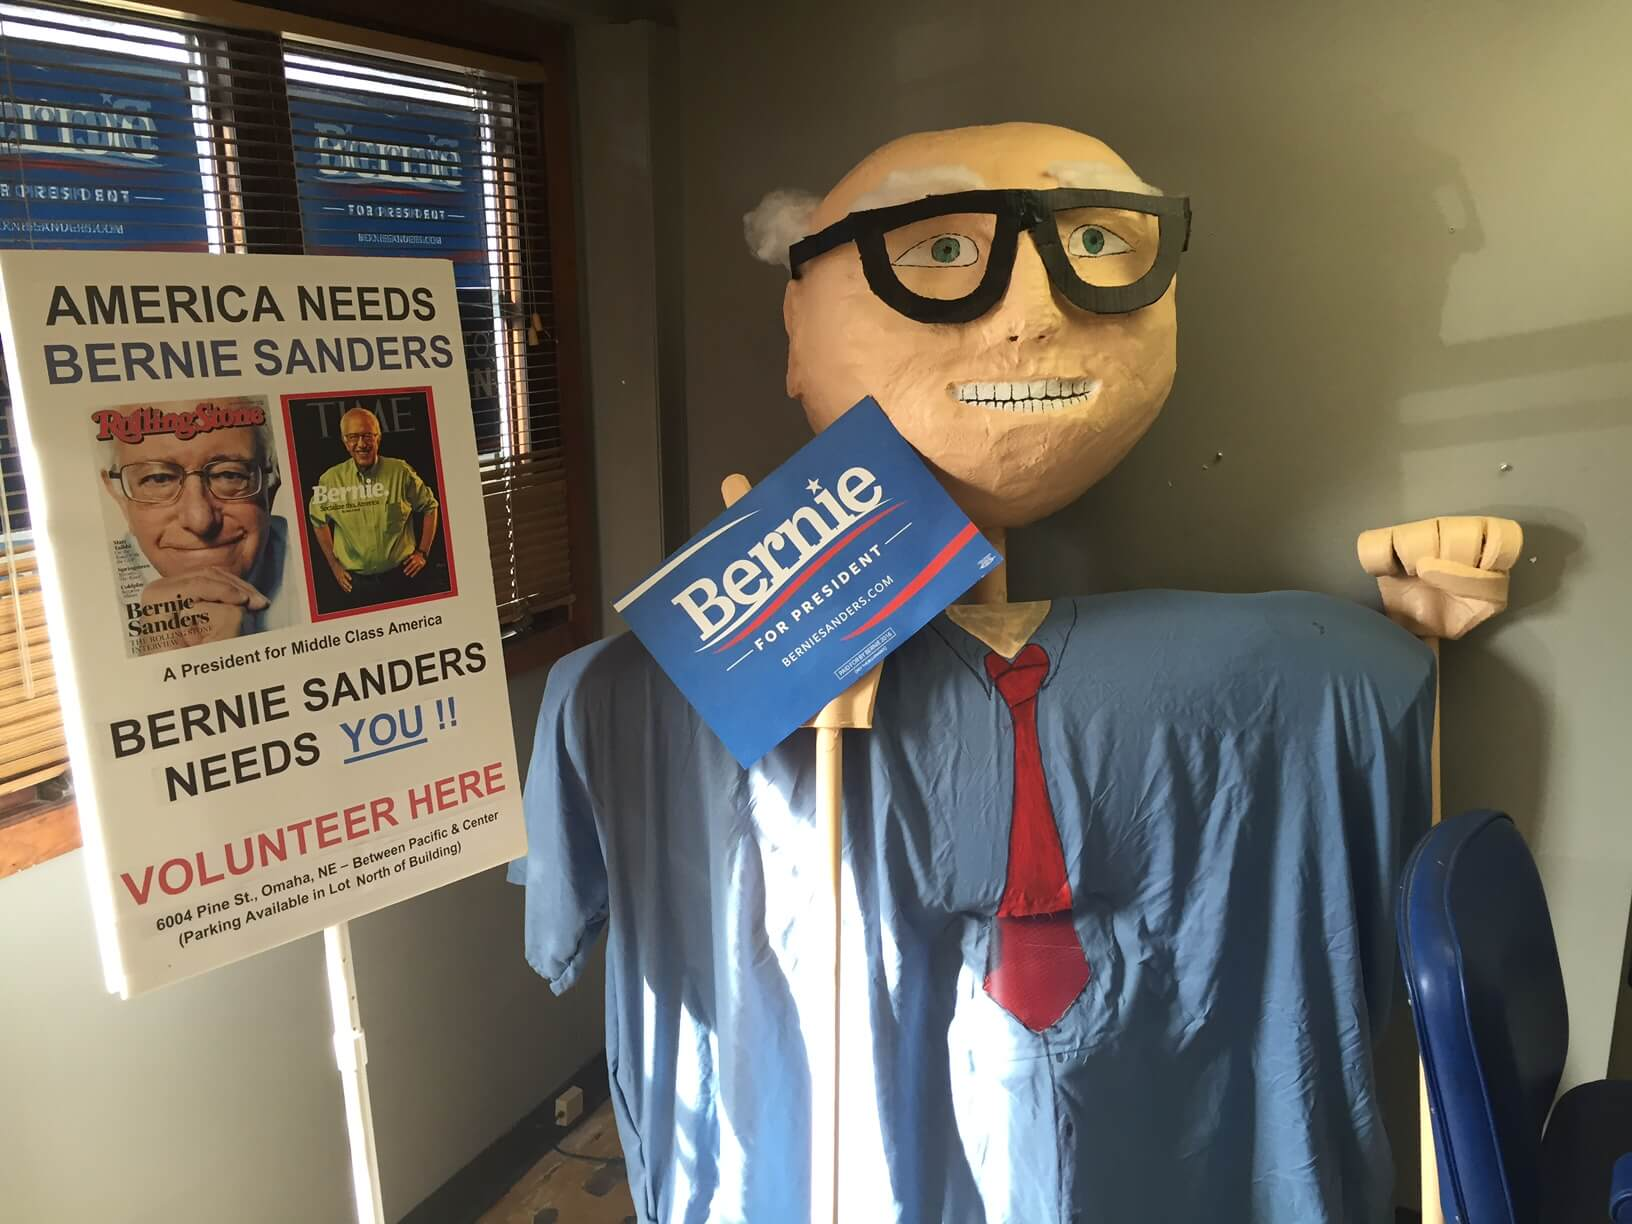 A giant Sanders puppet in their Omaha HQ